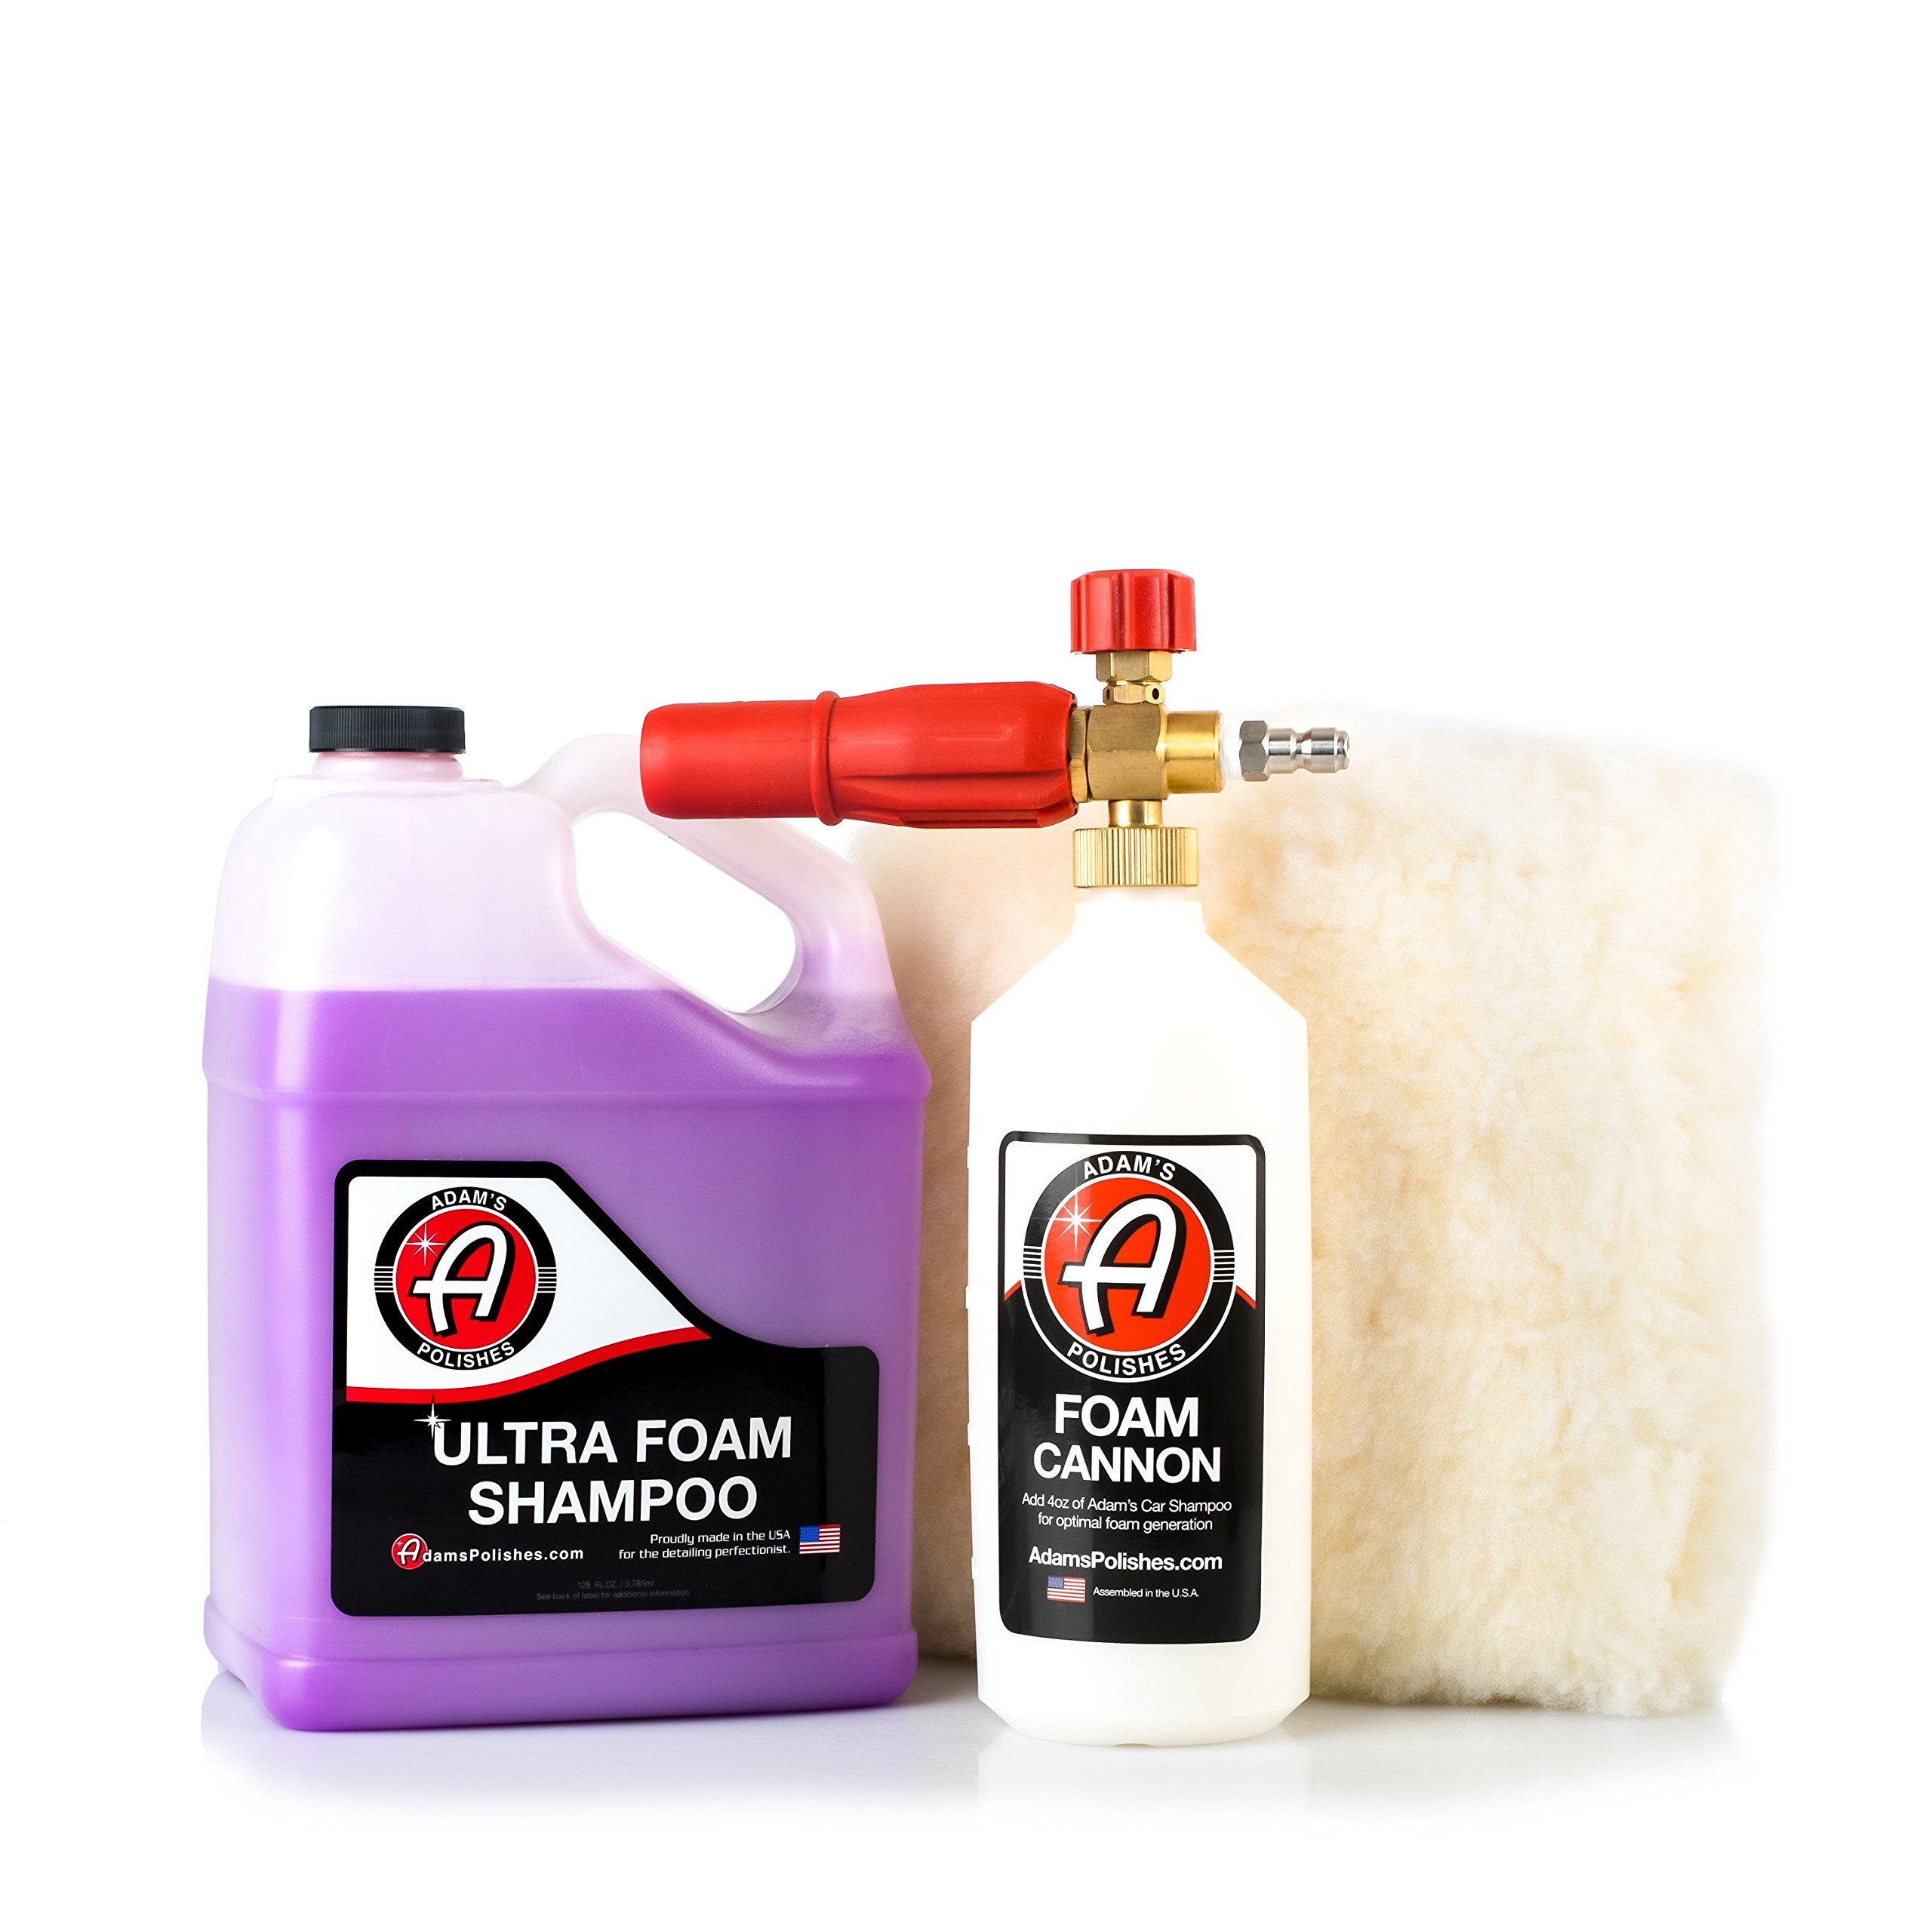 Adam's Foam Cannon Car Wash Kit - Produces Thick Car Foam Shampoo Soap with A Plush, Synthetic Wool Wash Pad for A Swirl & Scratch Free Wash - Car Cleaning Supplies - Pressure Washer & Hose Required by Adam's Polishes